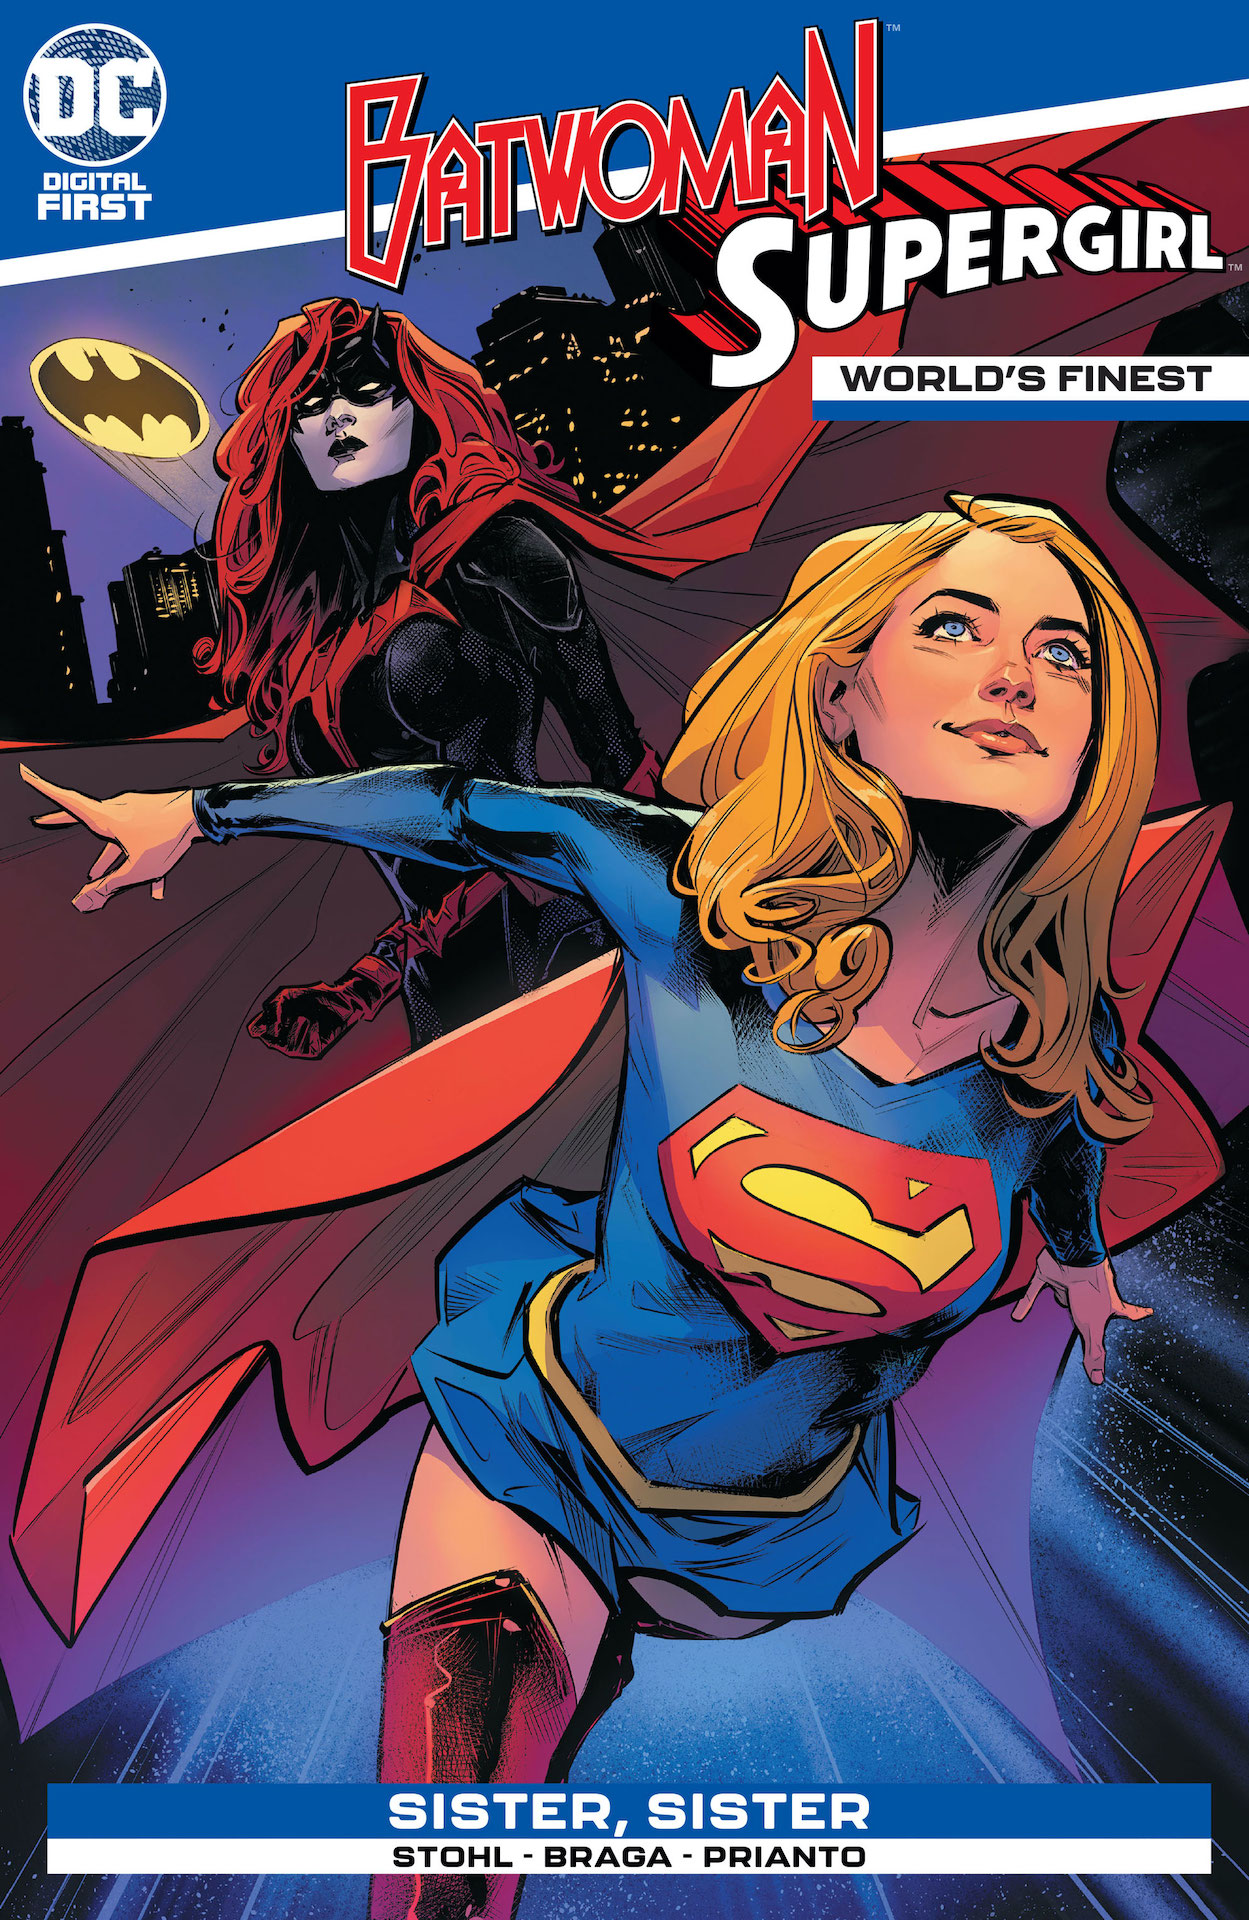 DC Preview: World's Finest: Batwoman and Supergirl #1